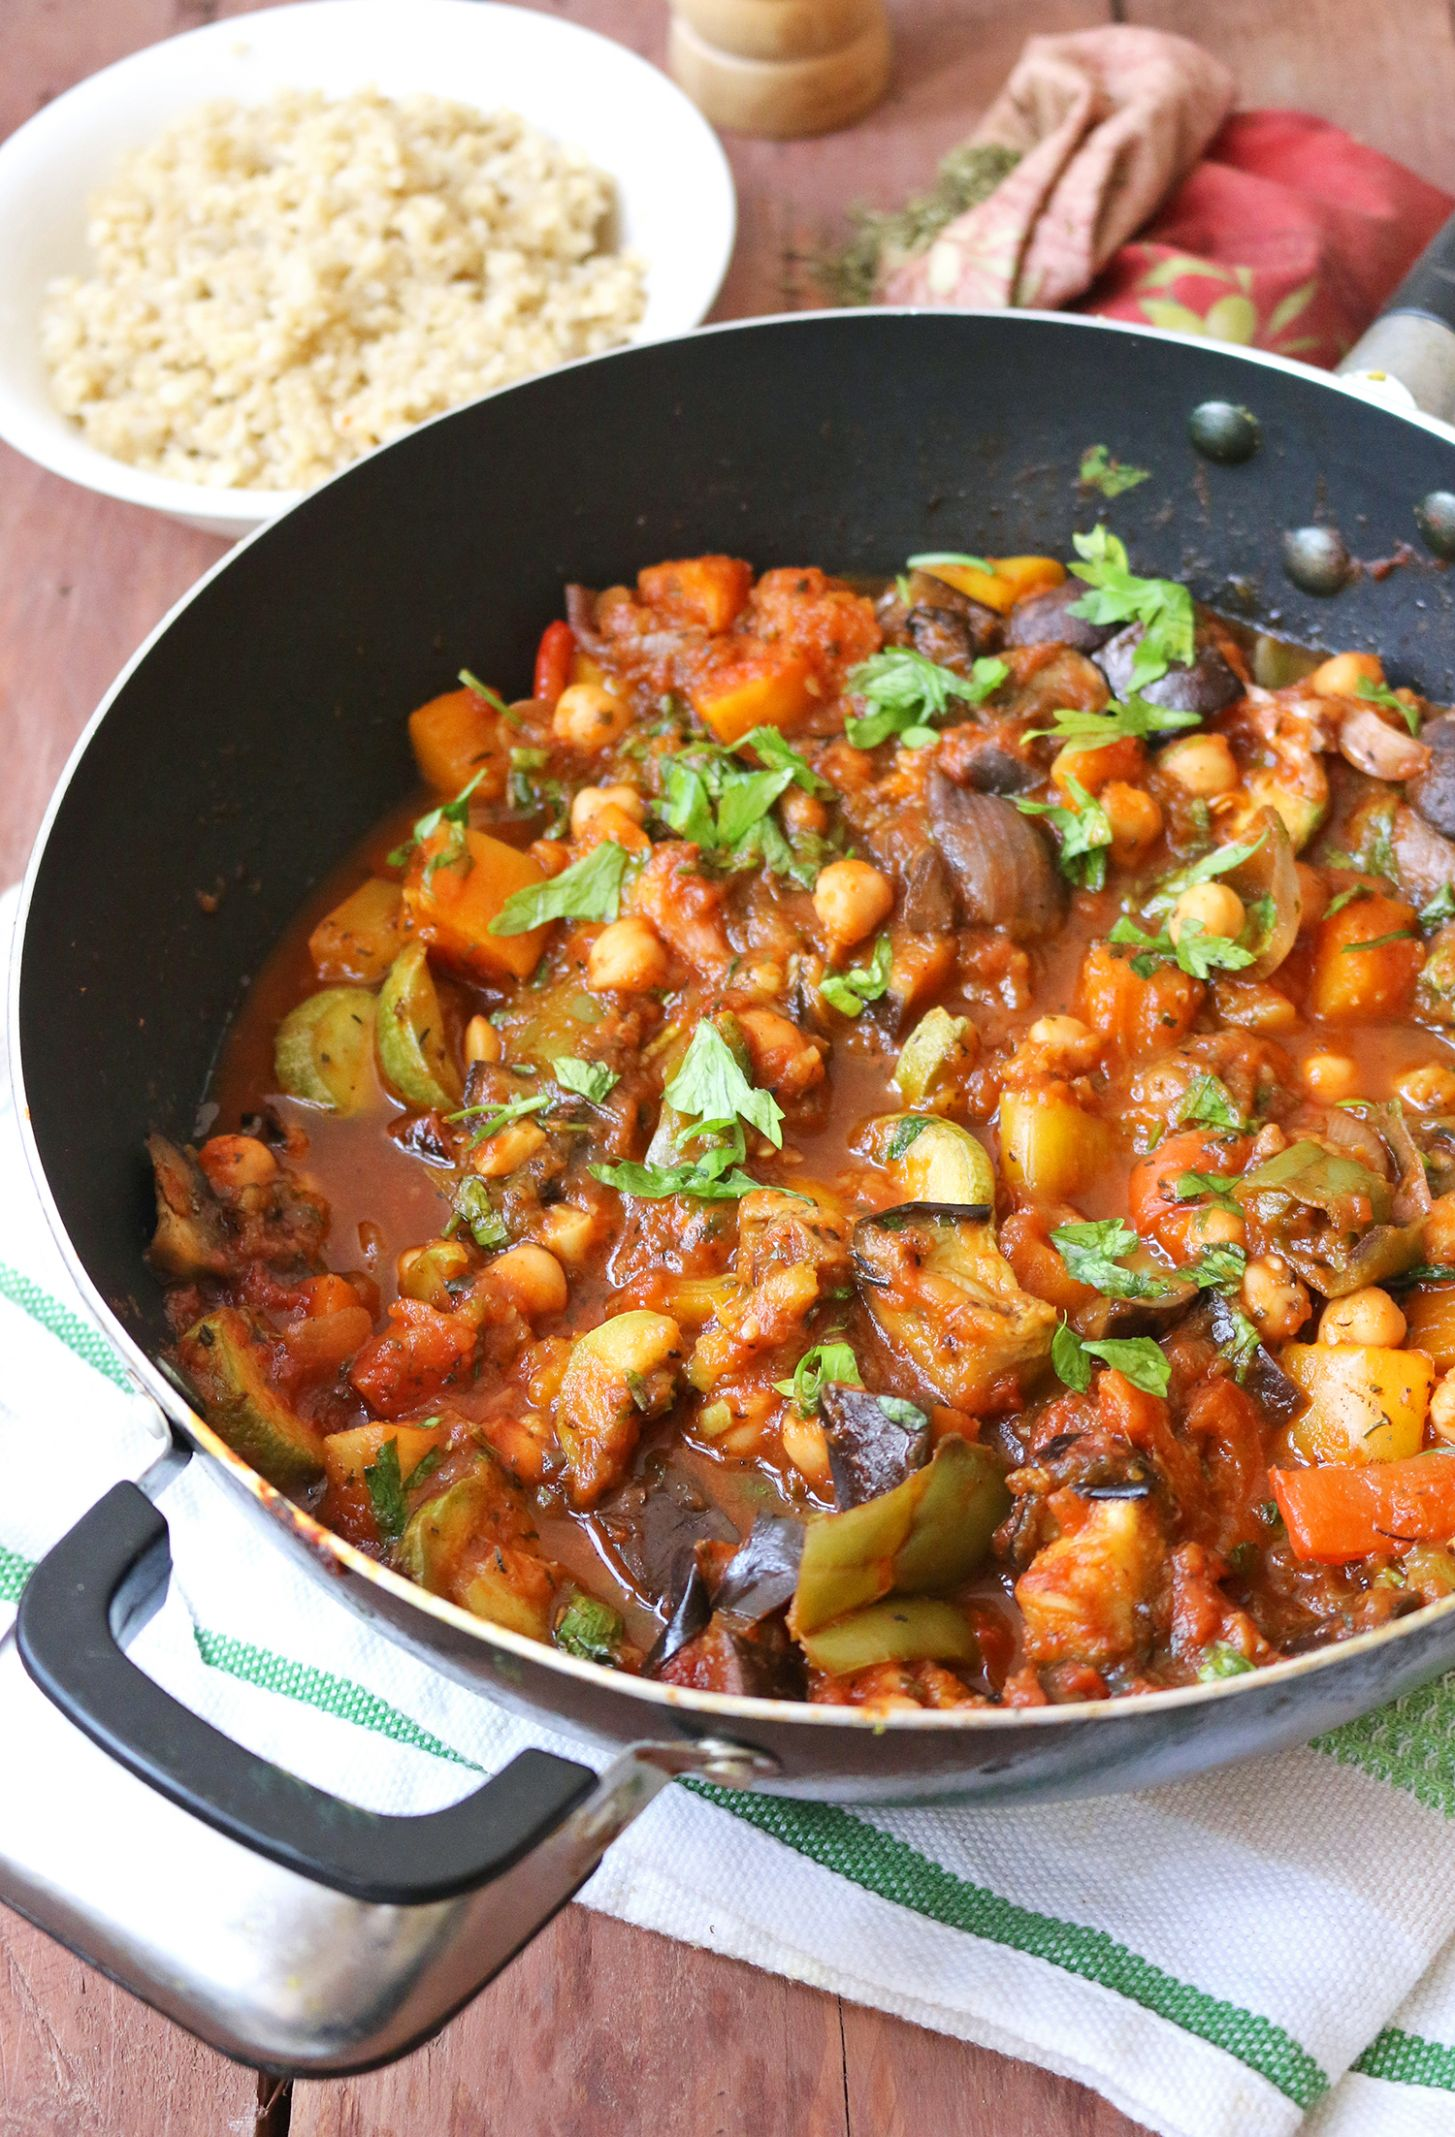 Mediterranean Vegetable and Chickpea Stew - Recipes Vegetable Stew